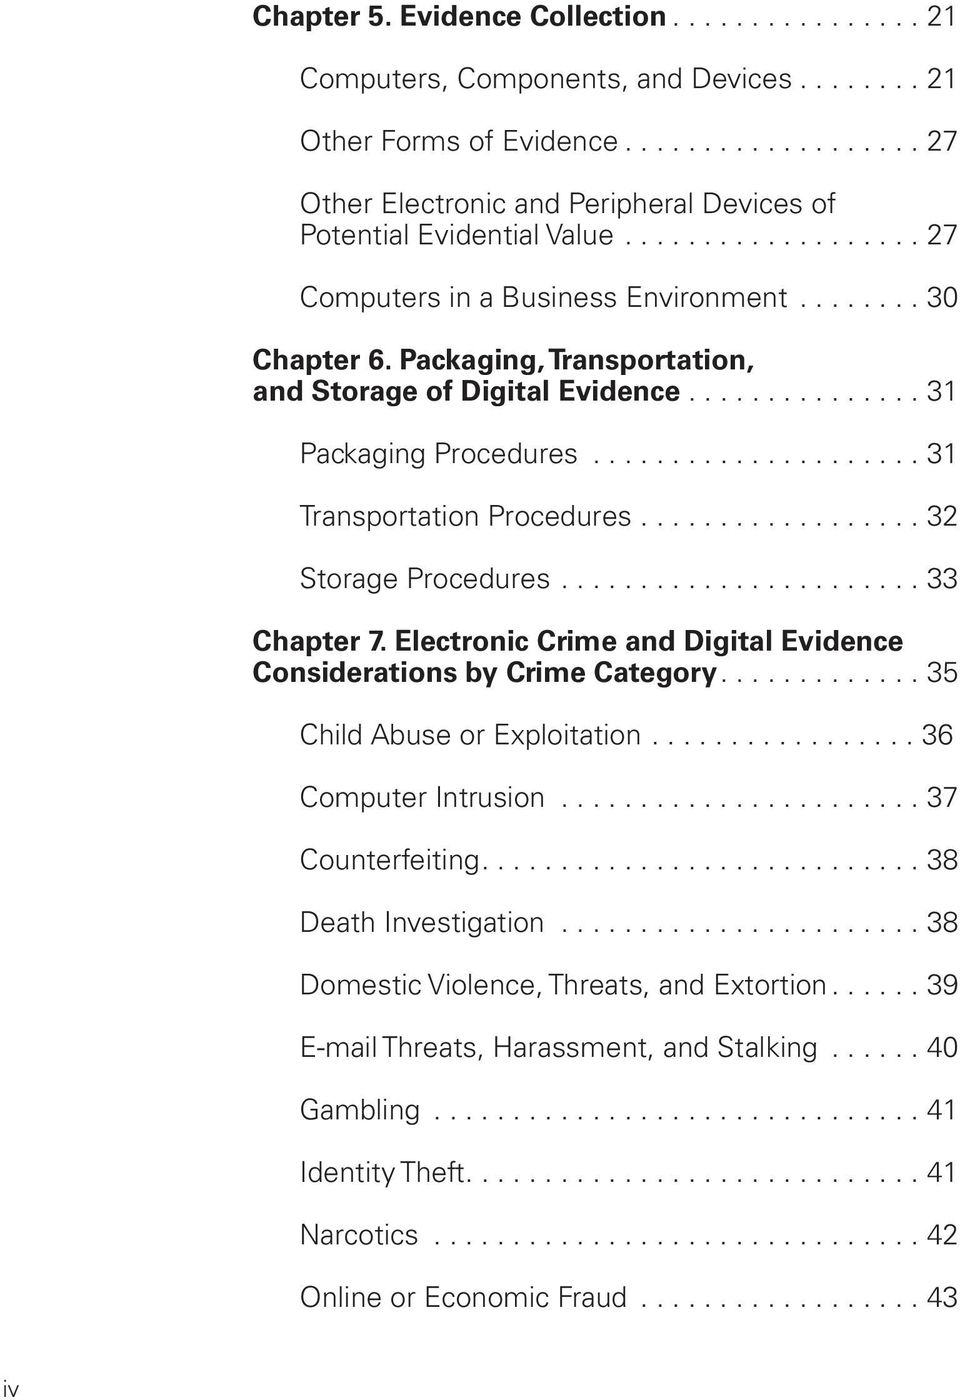 .................... 31 Transportation Procedures.................. 32 Storage Procedures....................... 33 Chapter 7. Electronic Crime and Digital Evidence Considerations by Crime Category.